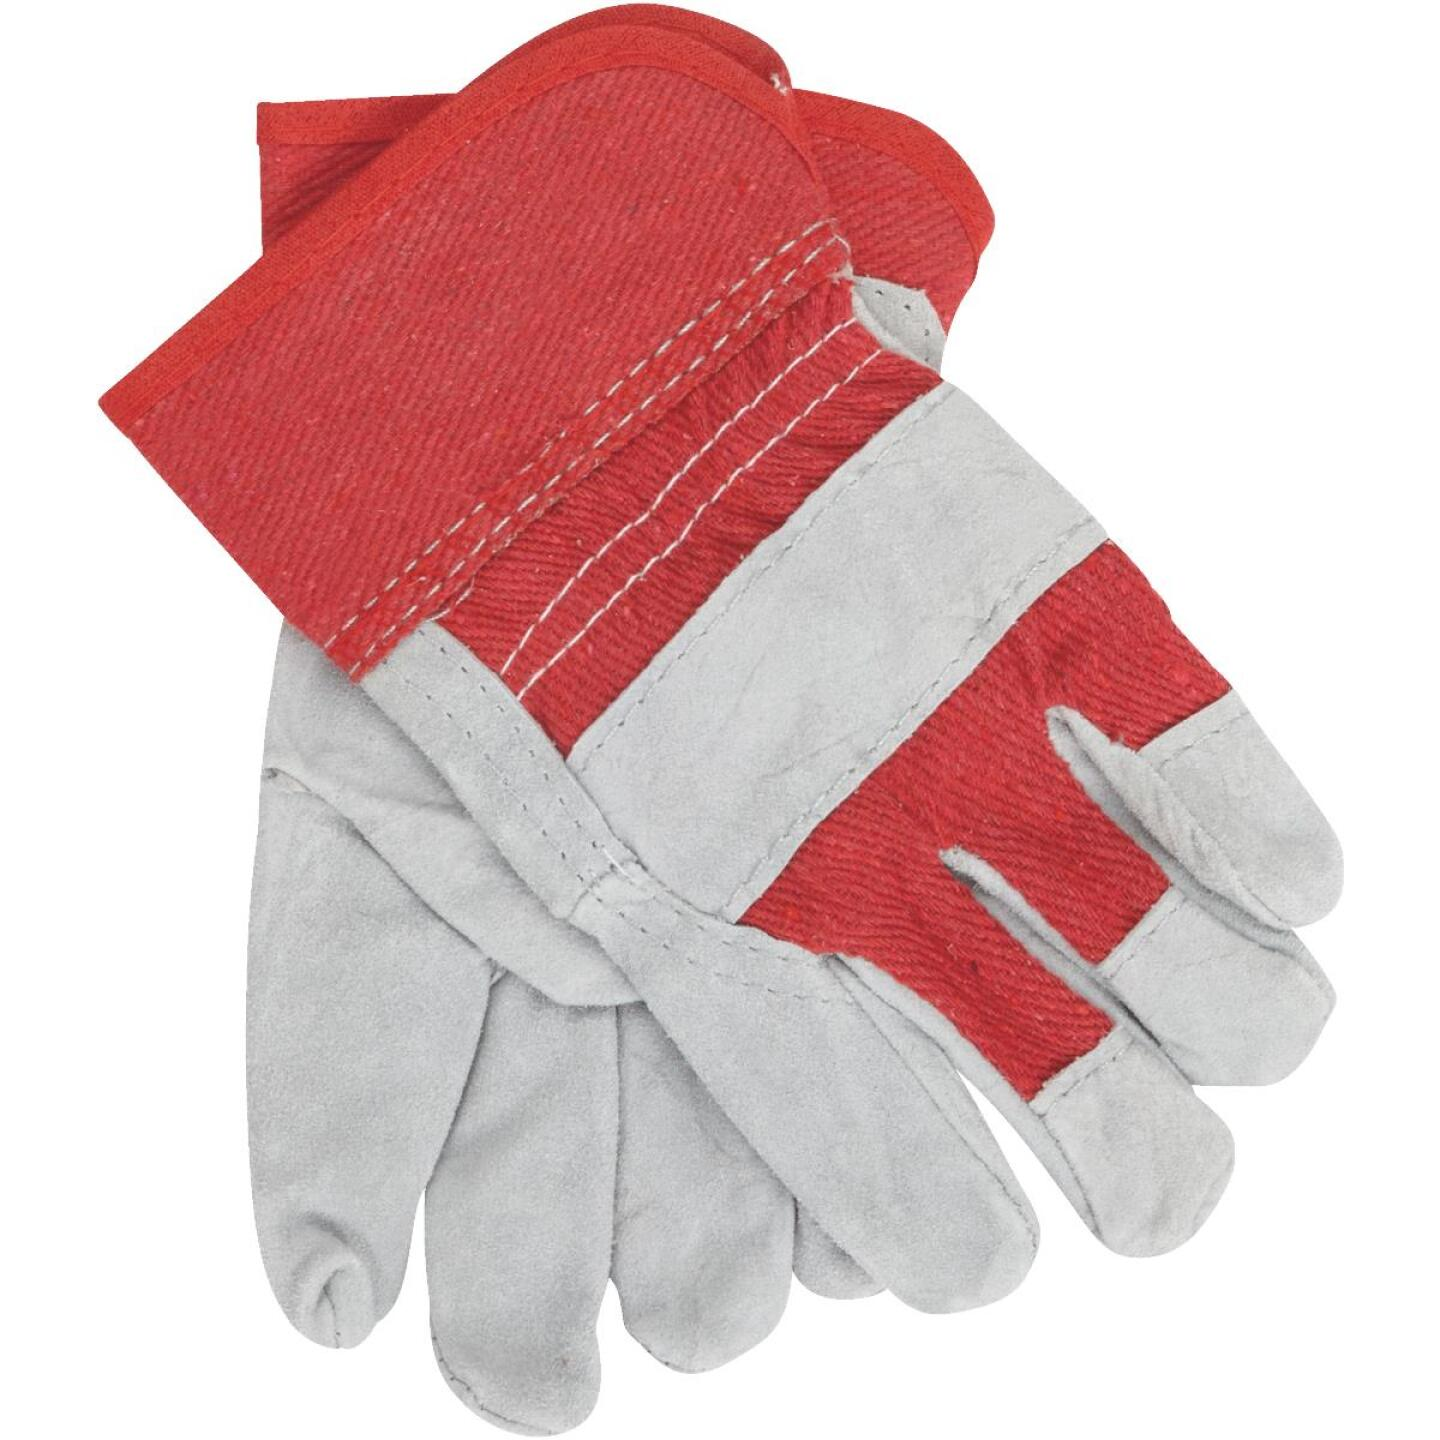 West Chester Protective Gear Age 5 to 8 Leather Glove Image 1